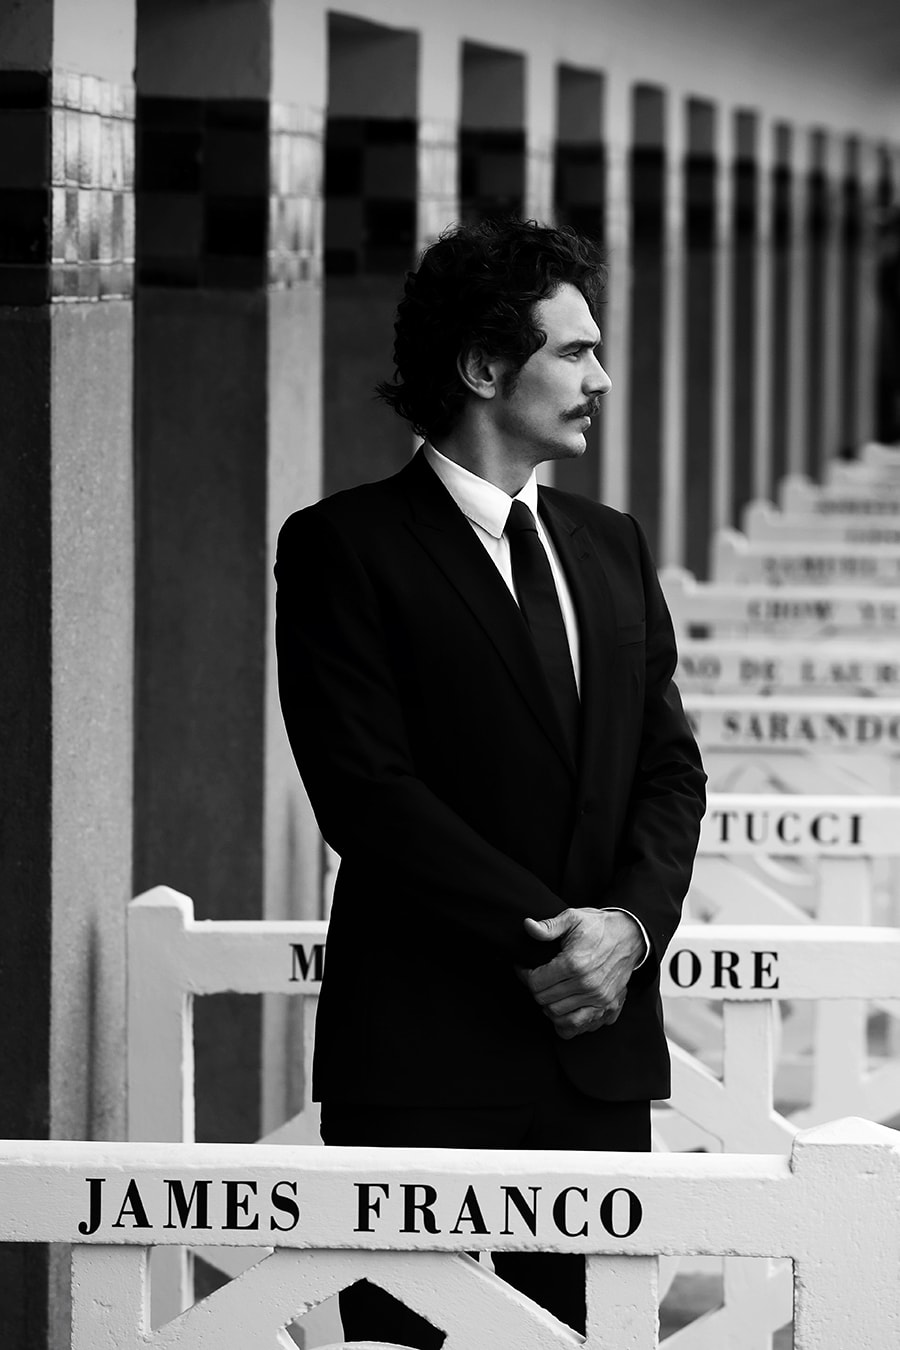 JamesFranco, nicolasgerardin, photographe, actor, deauville, dessange, international, blackandwhite, event, hairstyle, fashion, dior